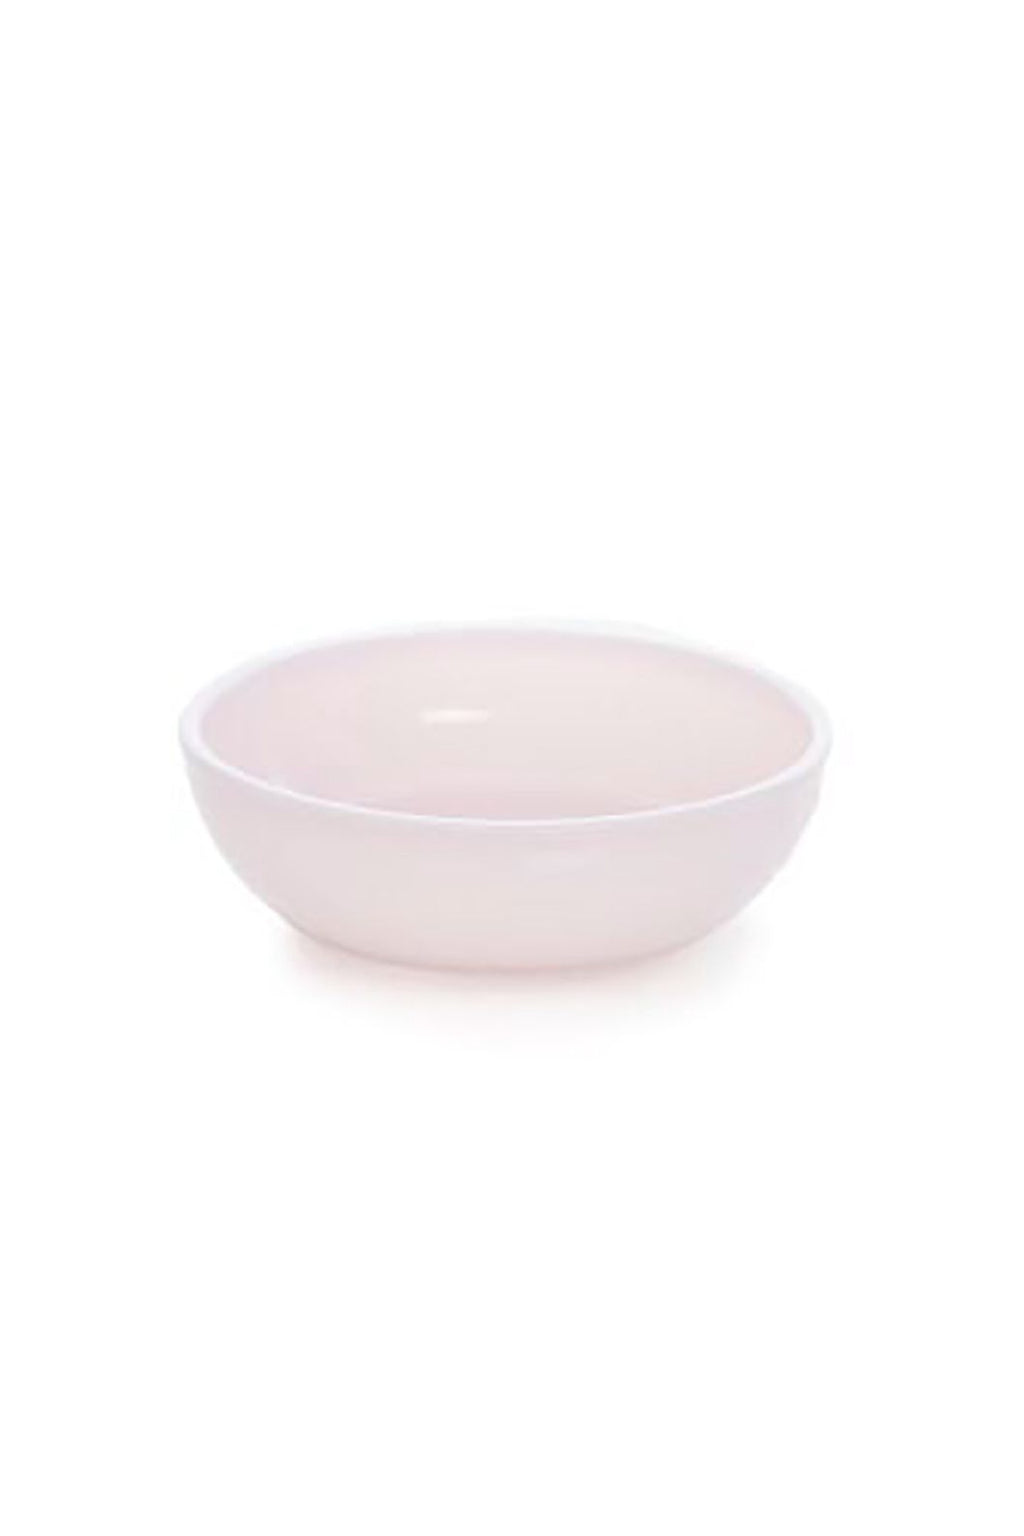 "Mosser Glass 4.5"" Tableware Bowl - Crown Tuscan"